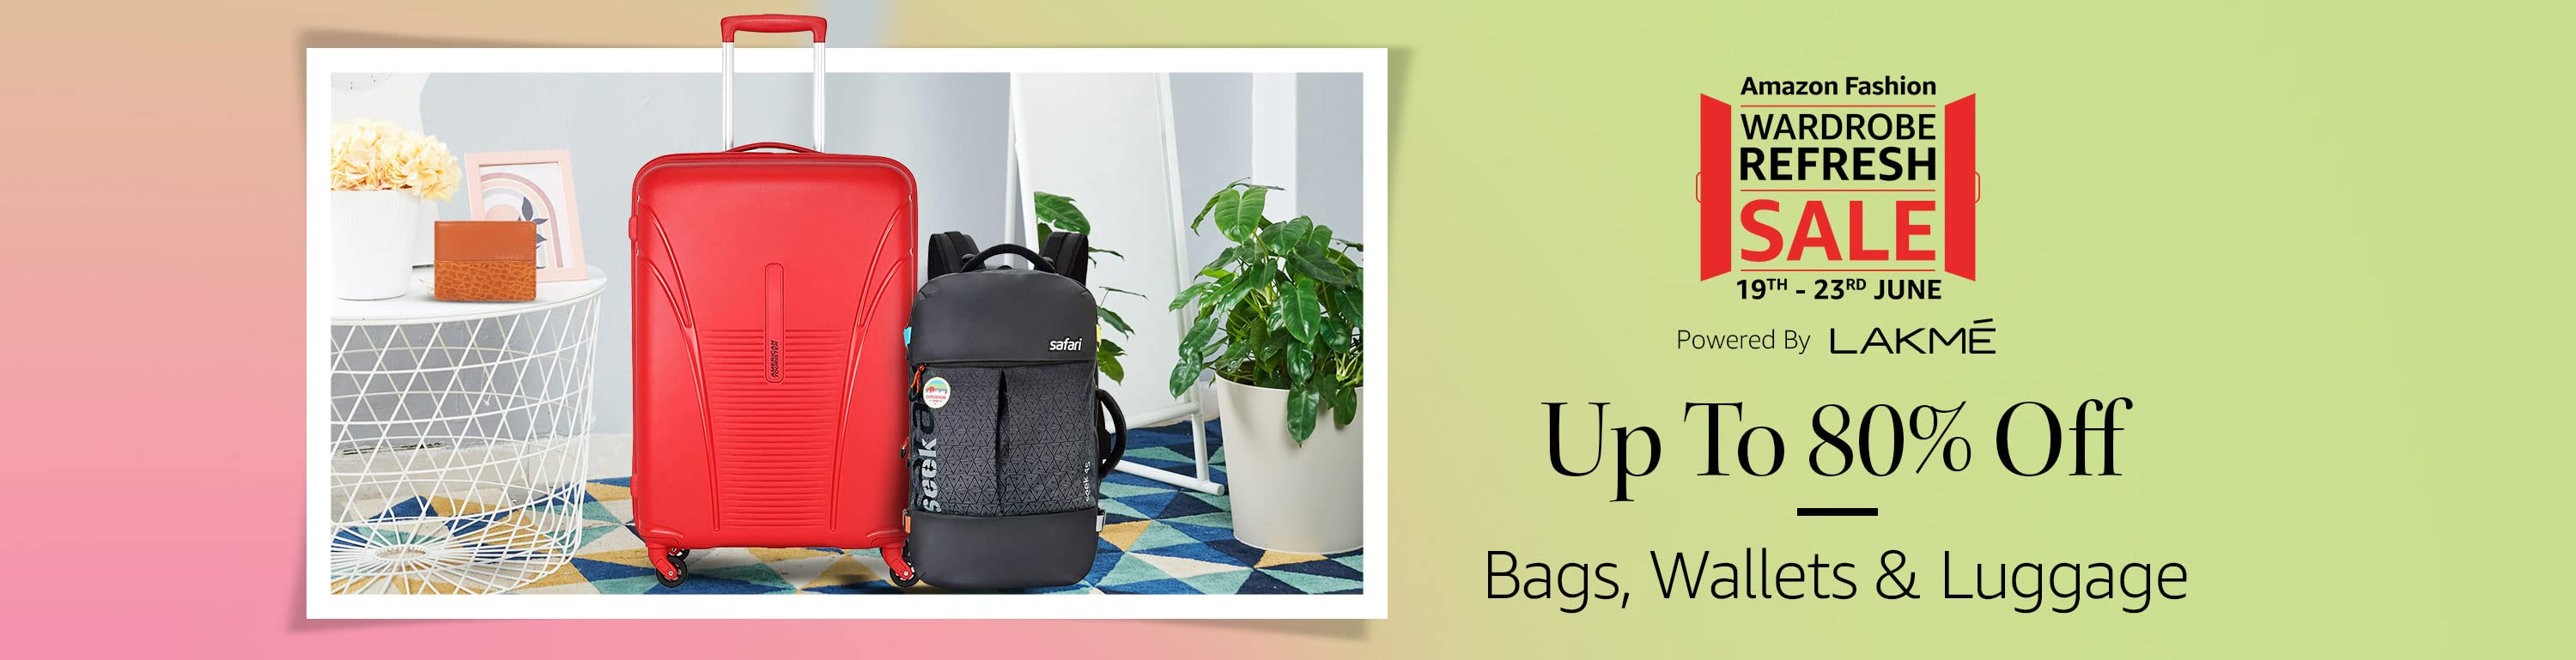 Bags, wallets and luggage